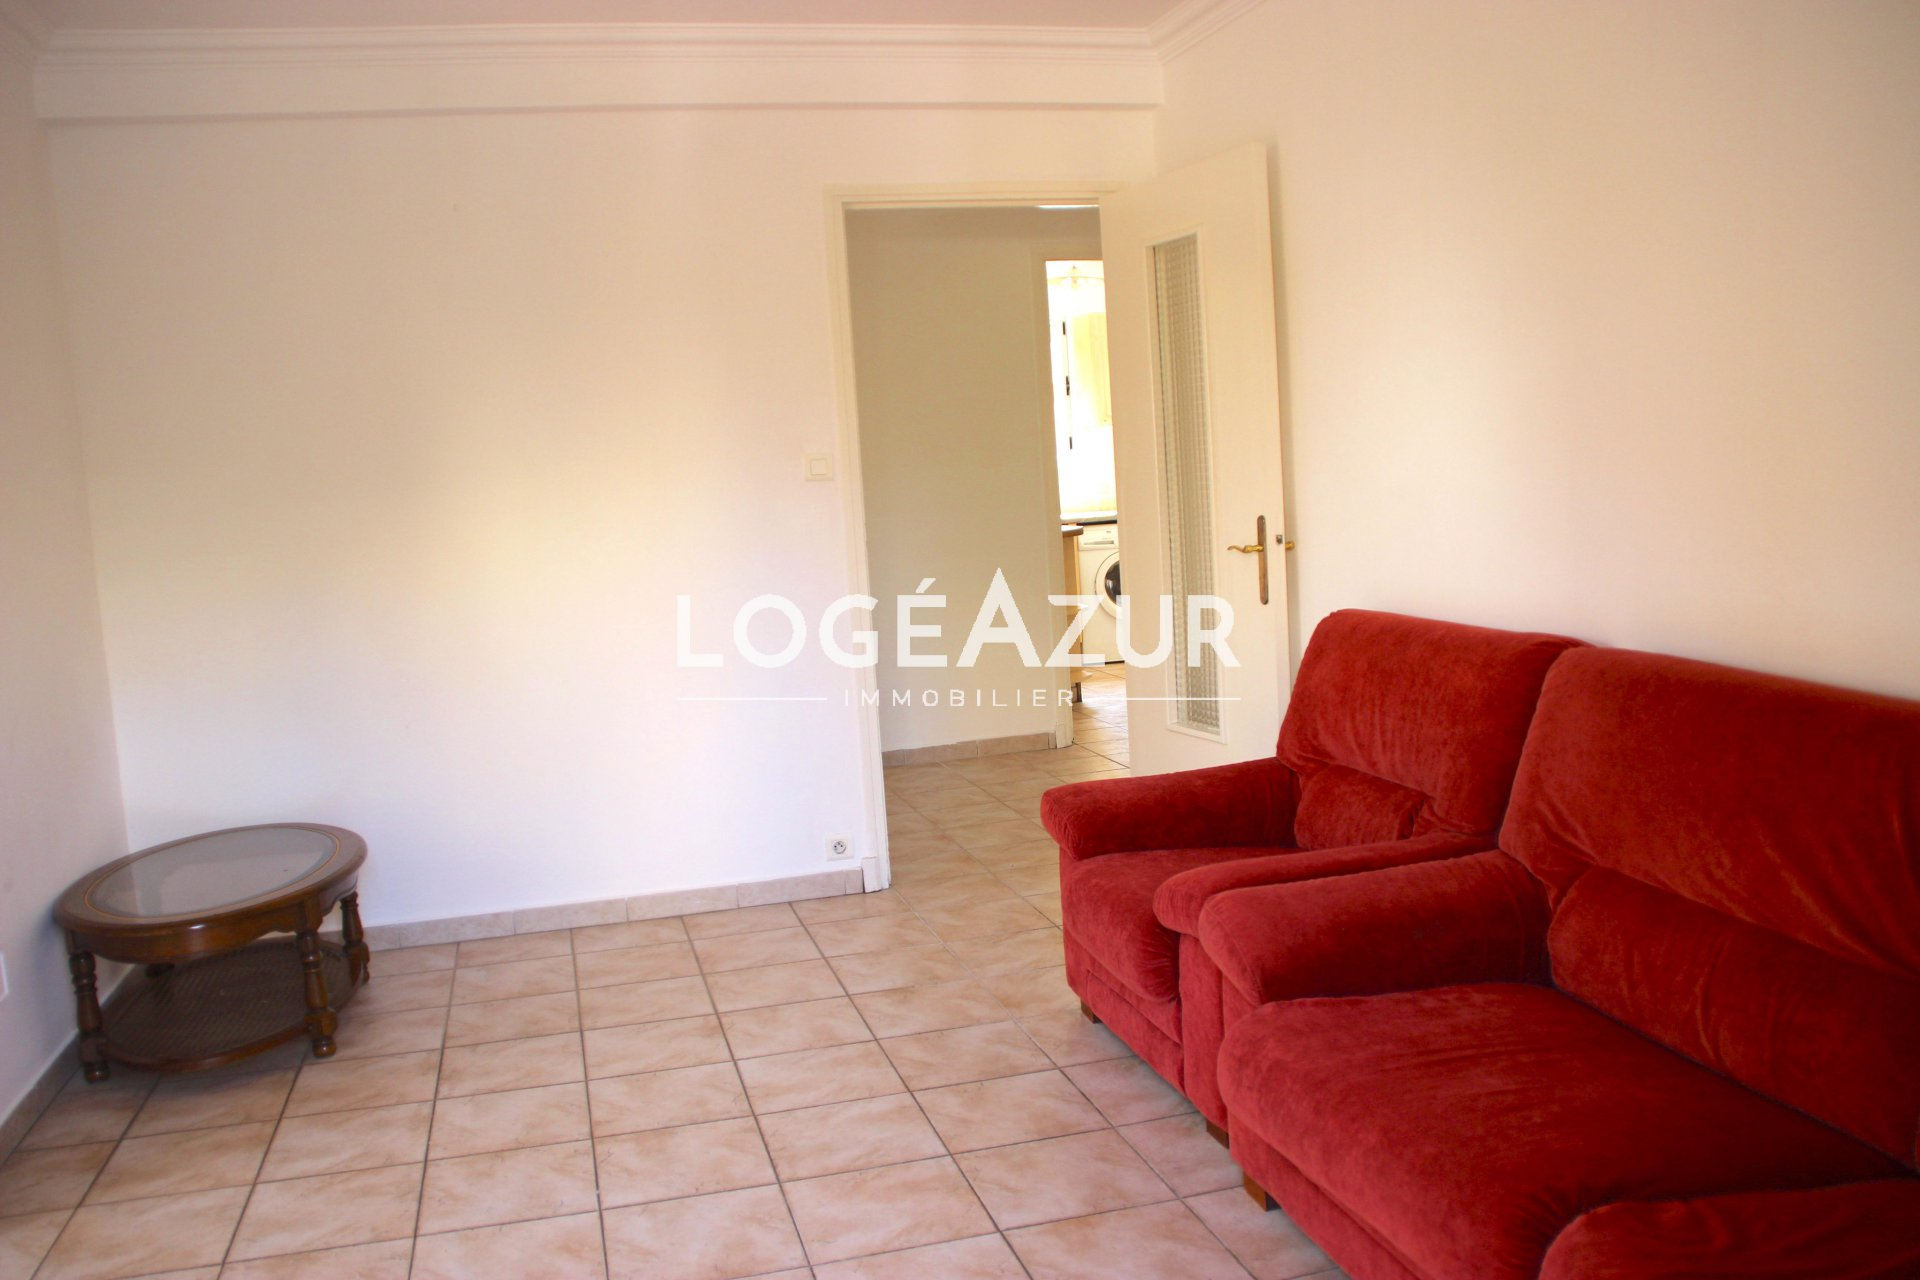 Vente Appartement 2 chambres Antibes